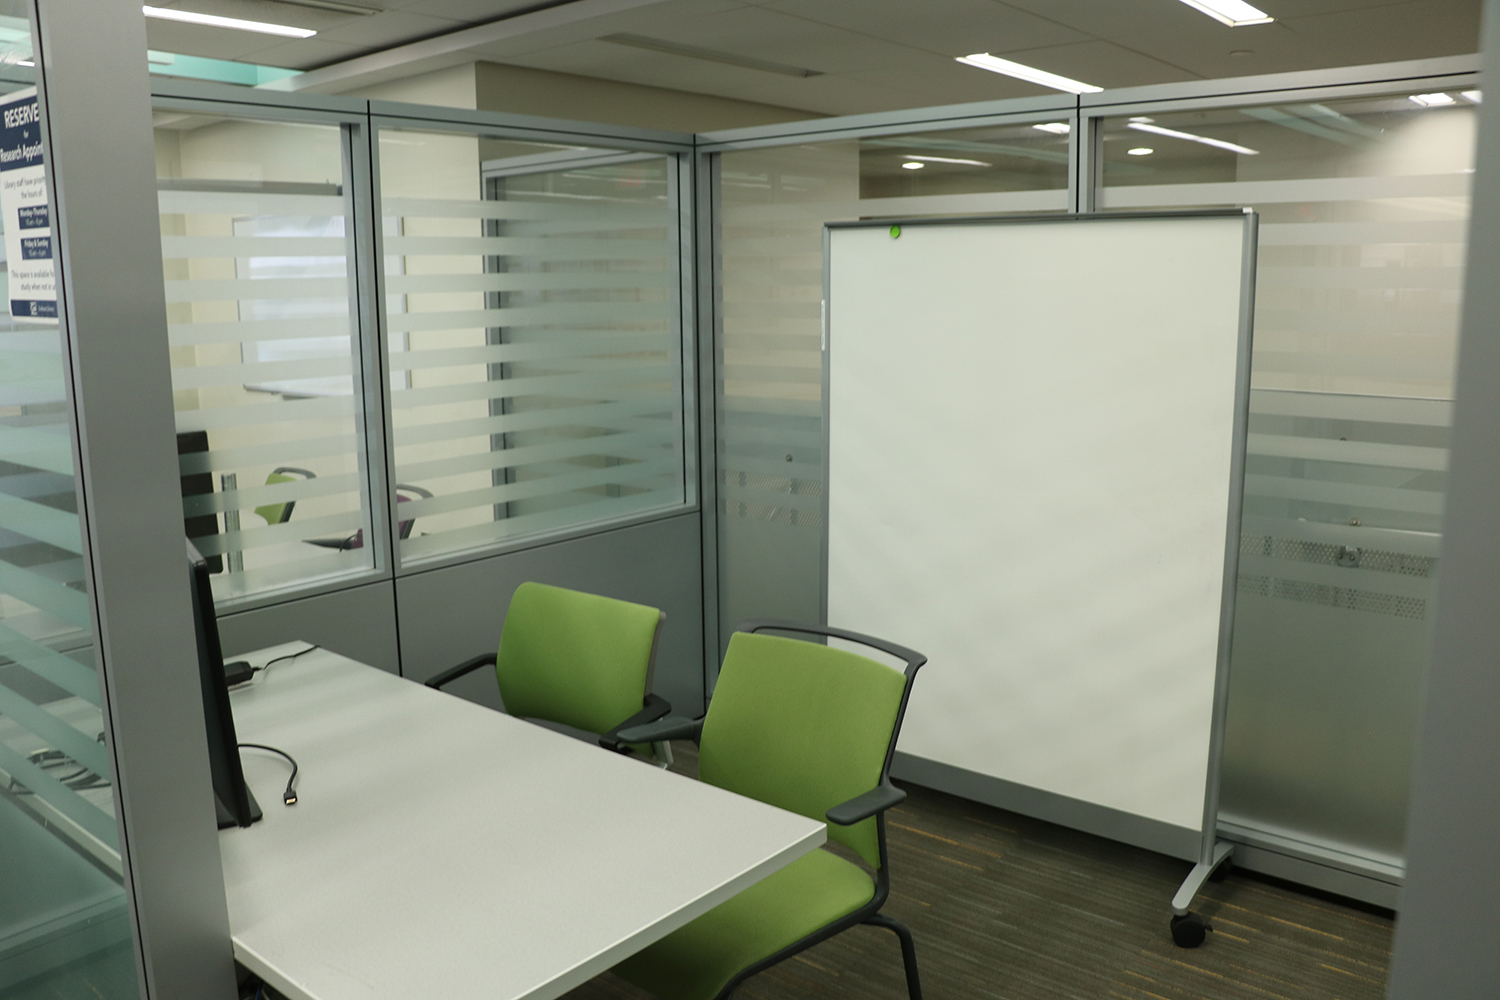 View of whiteboard, 2 chairs (moveable), computer